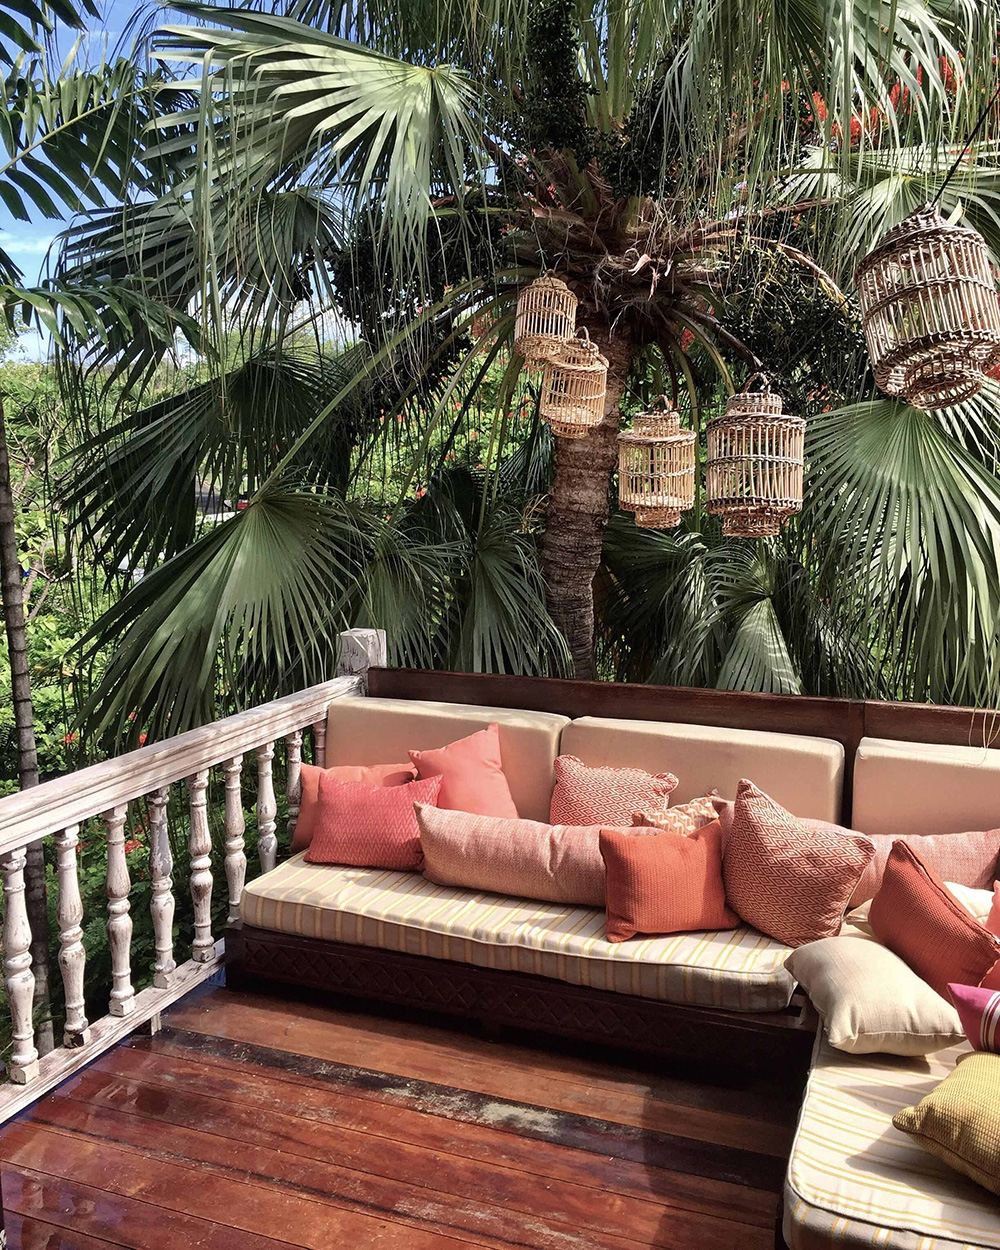 The balcony and outdoor couches at hotel, Cotton House